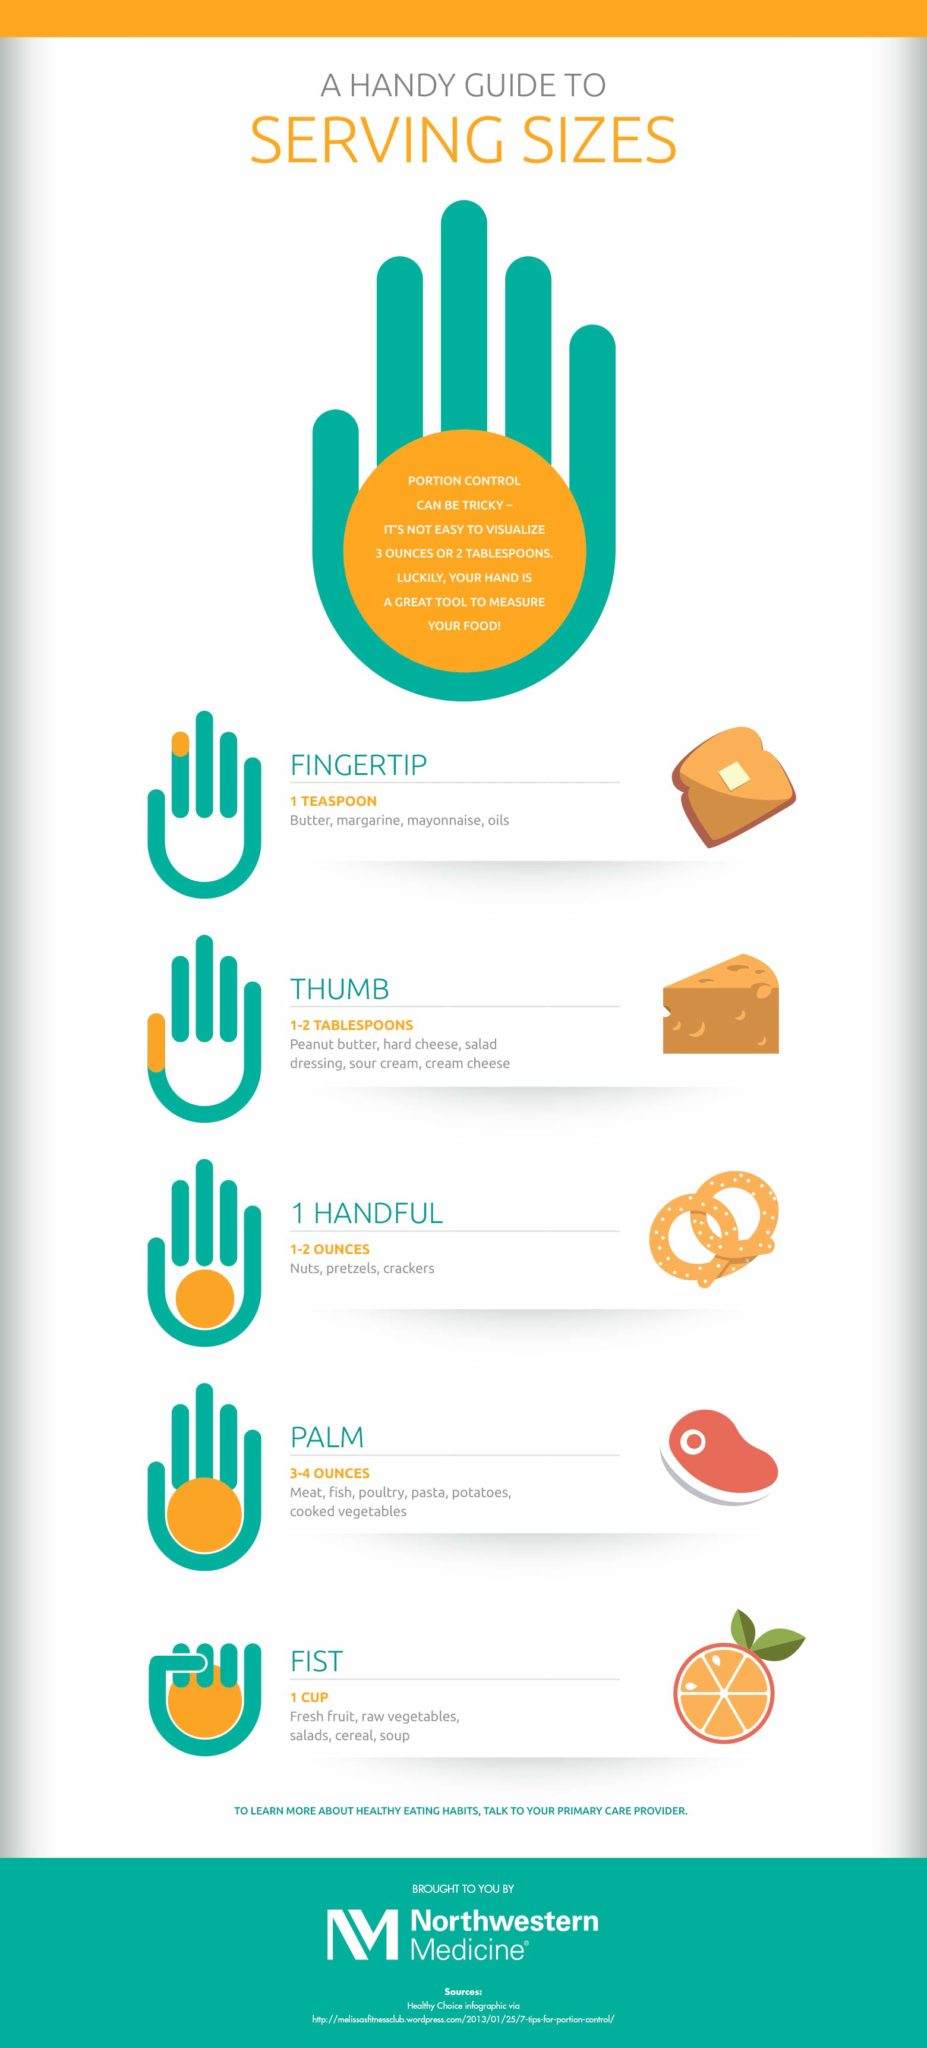 hand-guide-serving-size-portion-control-img